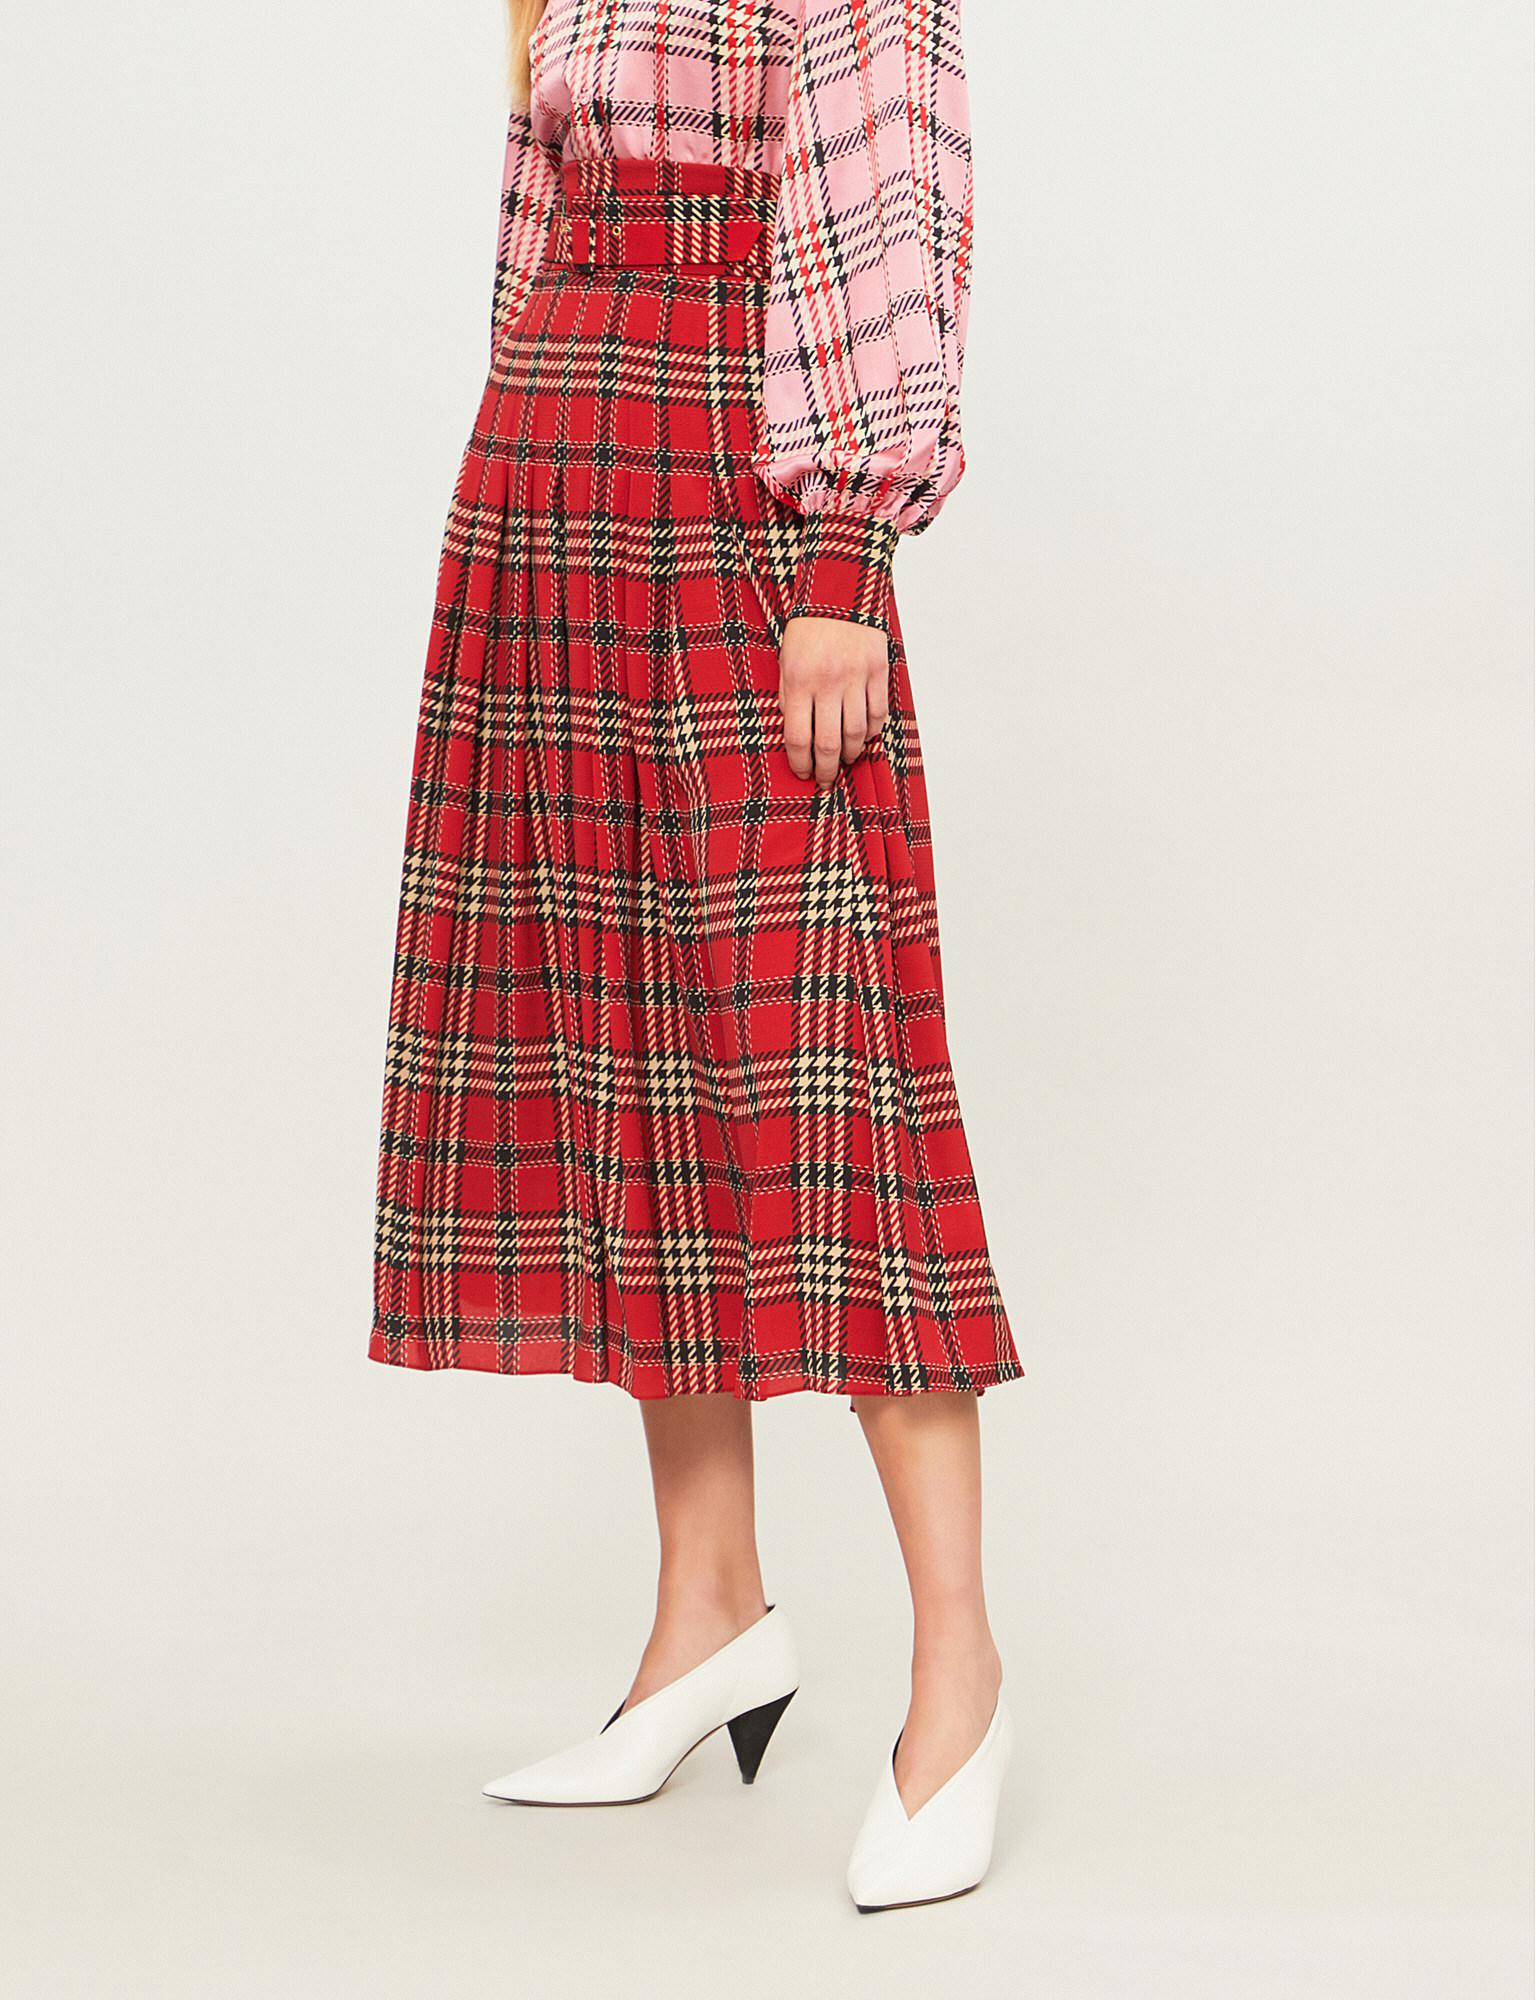 3d133680d Emilia Wickstead Checked Pleated Woven Midi Skirt in Red - Lyst